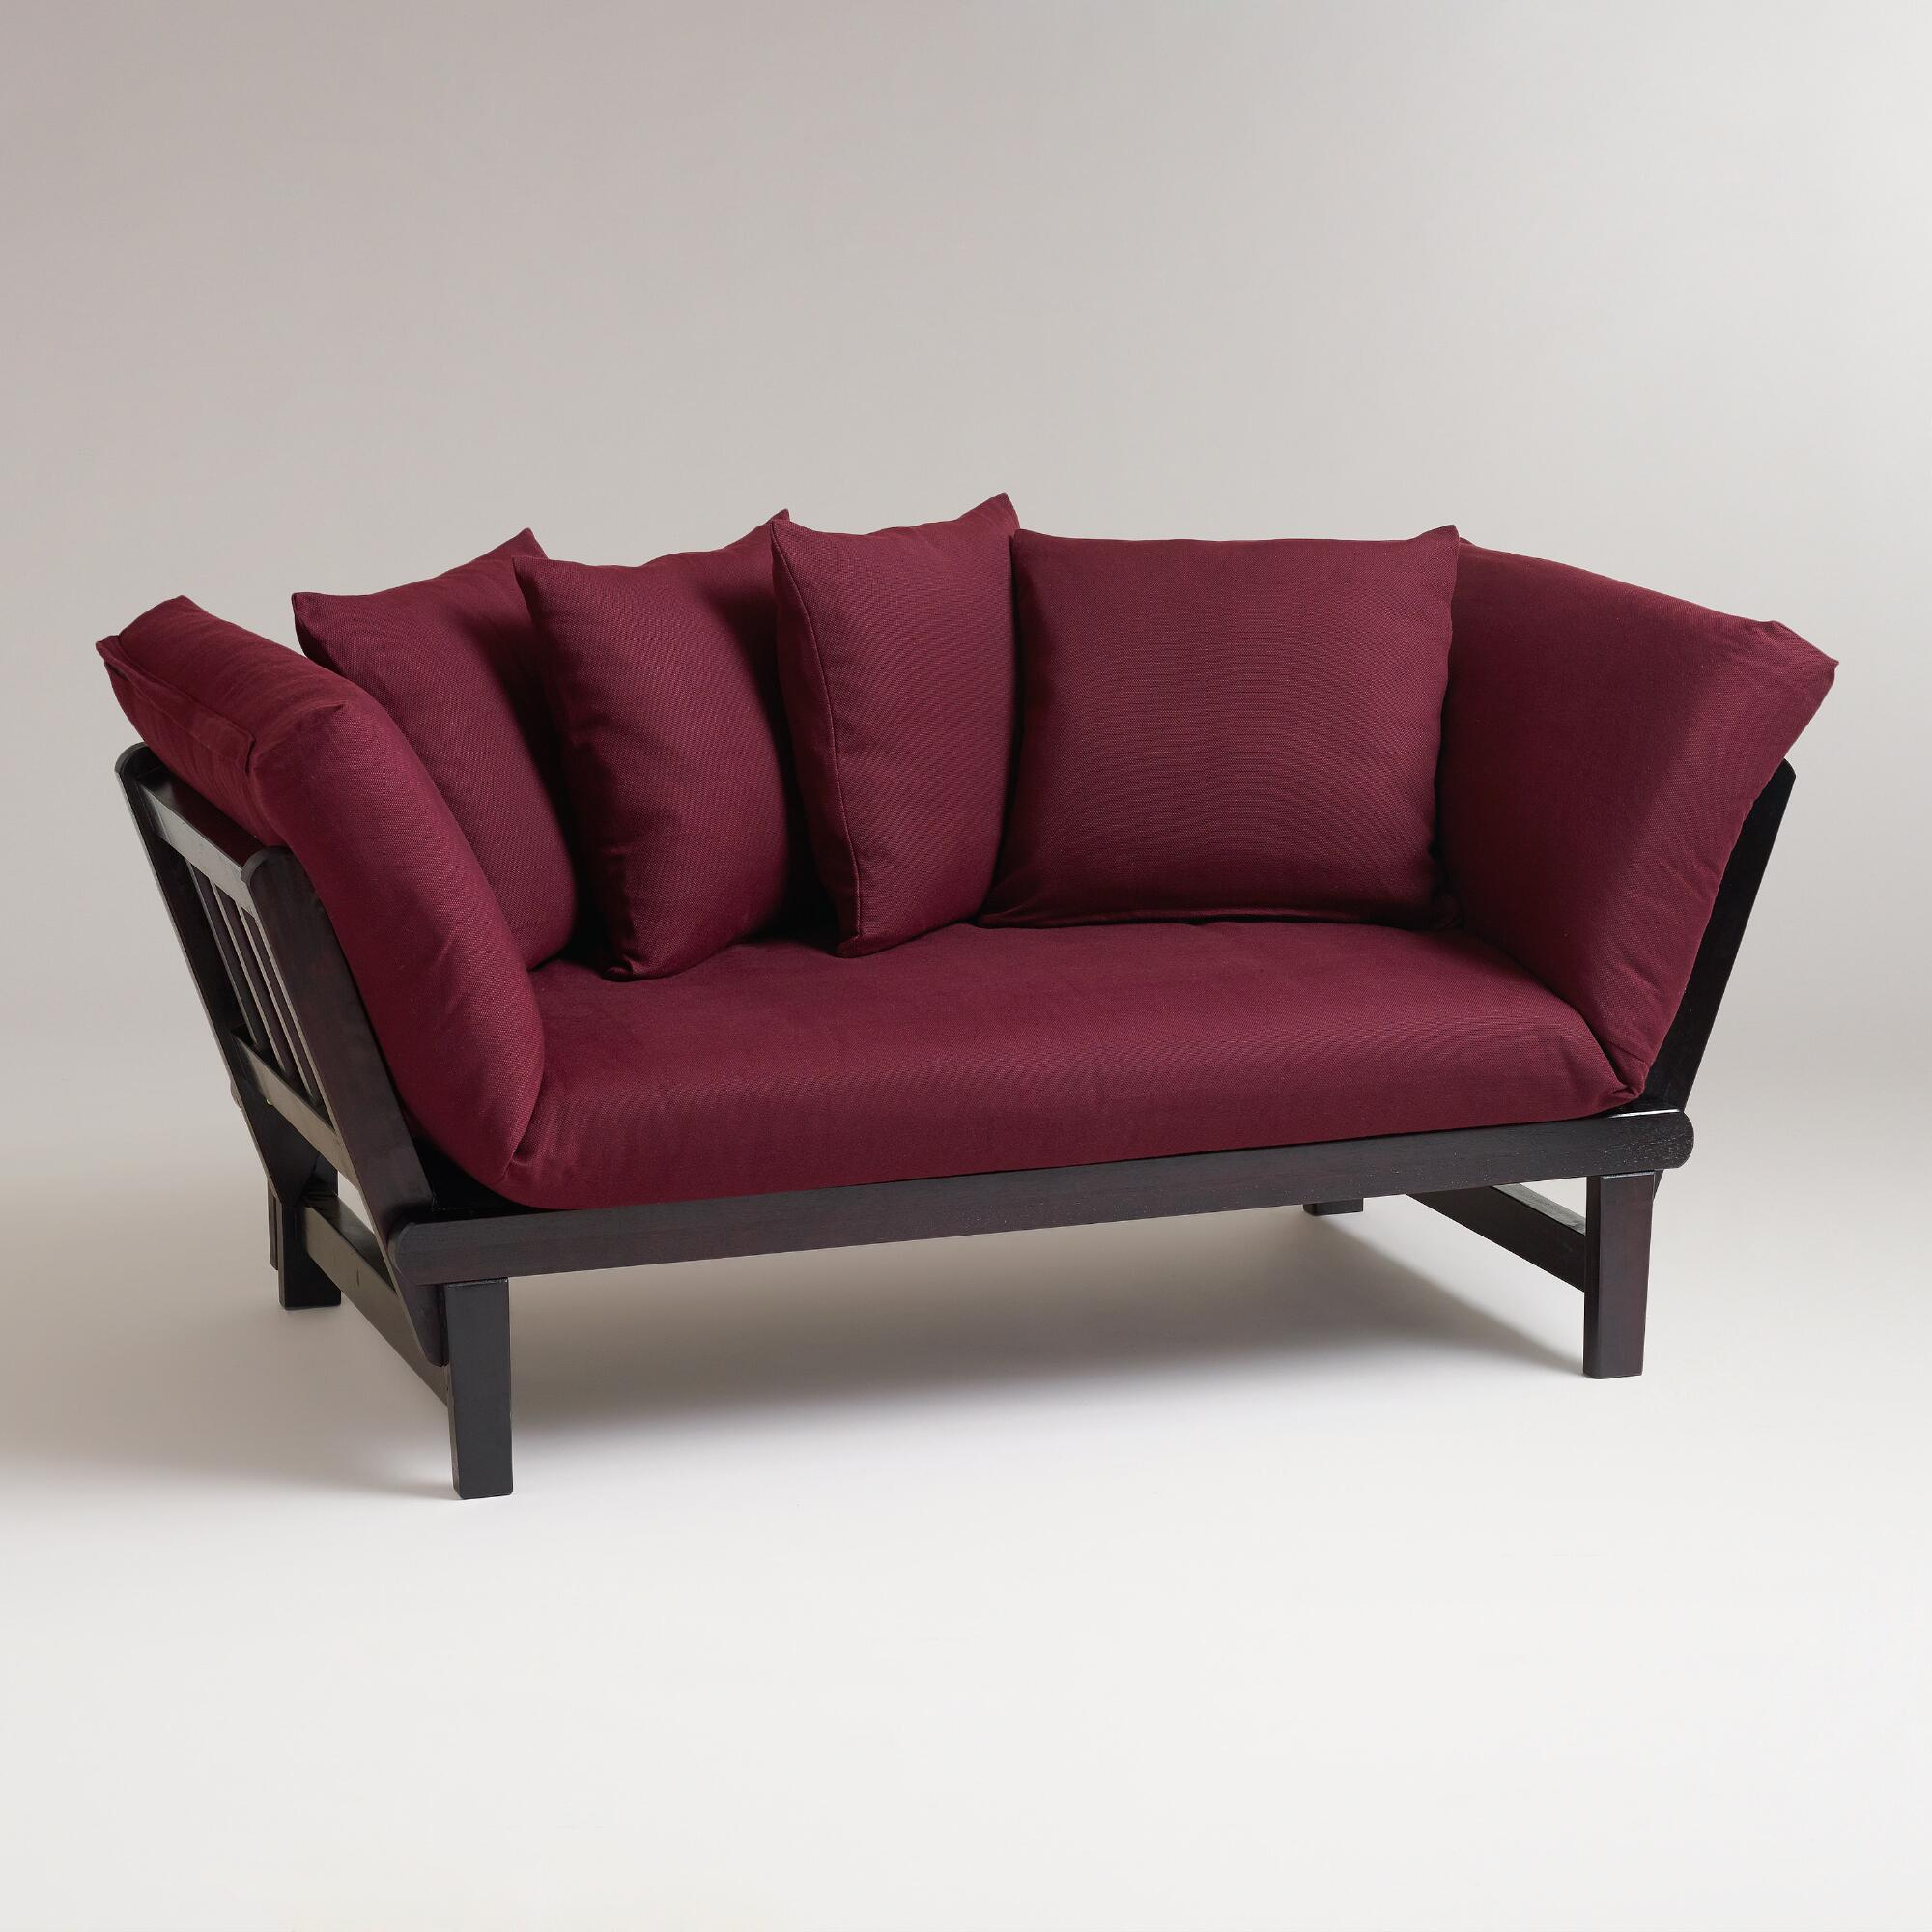 Cost plus world market fig studio day sofa slipcover for Average cost of sofa